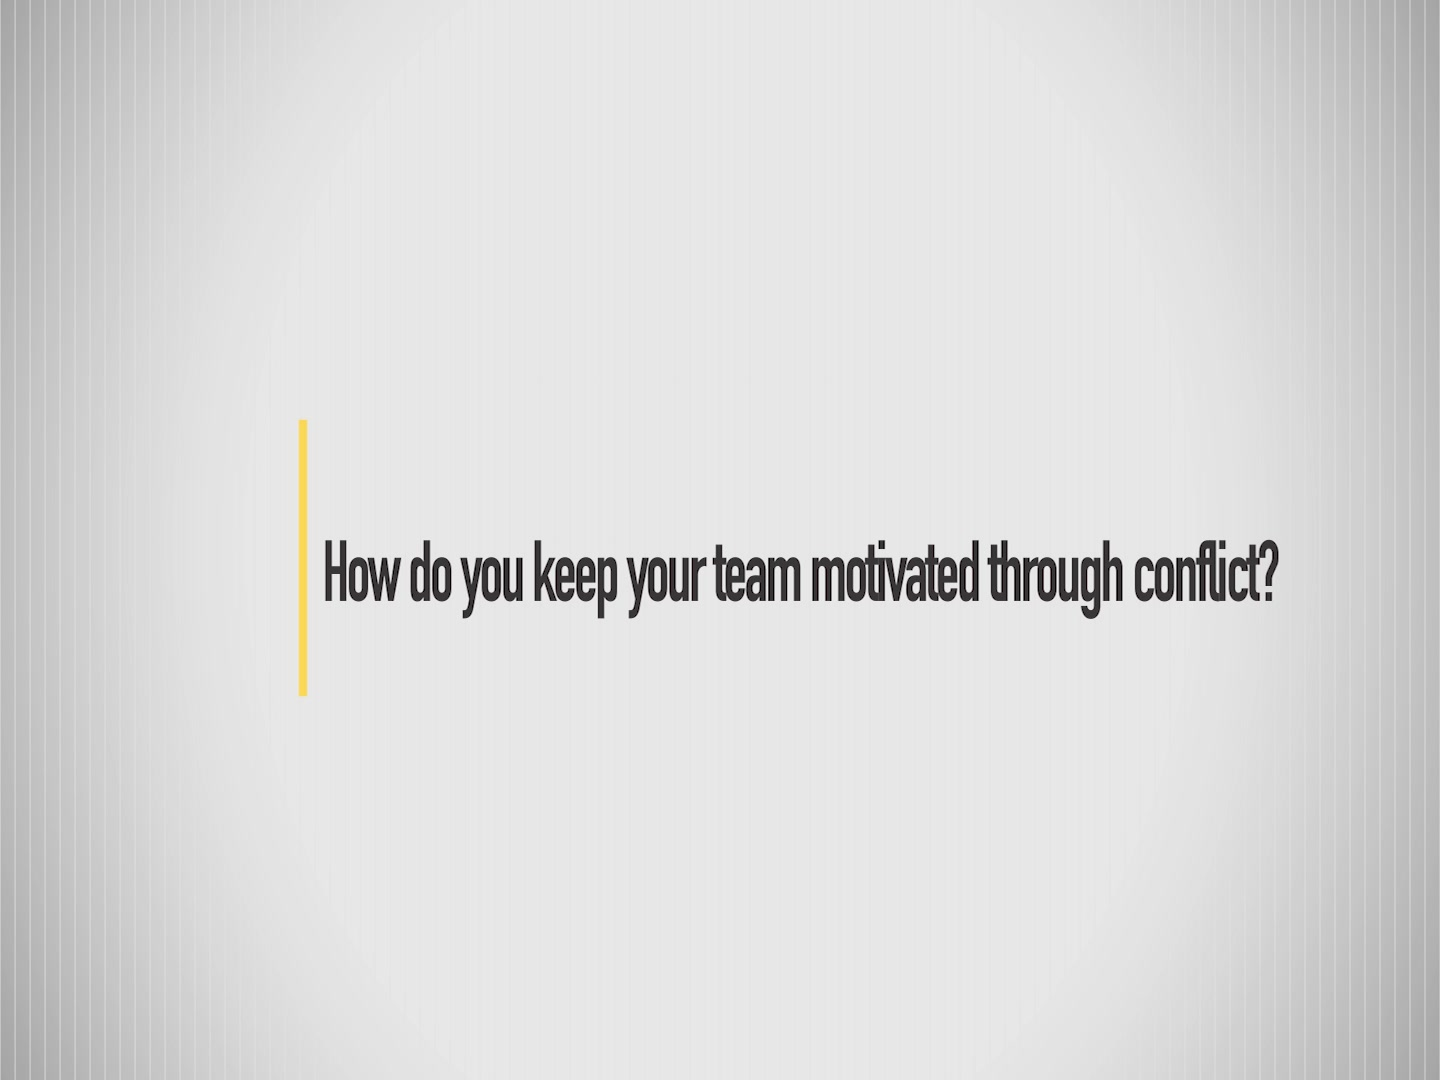 How do you keep your team motivated through conflict?